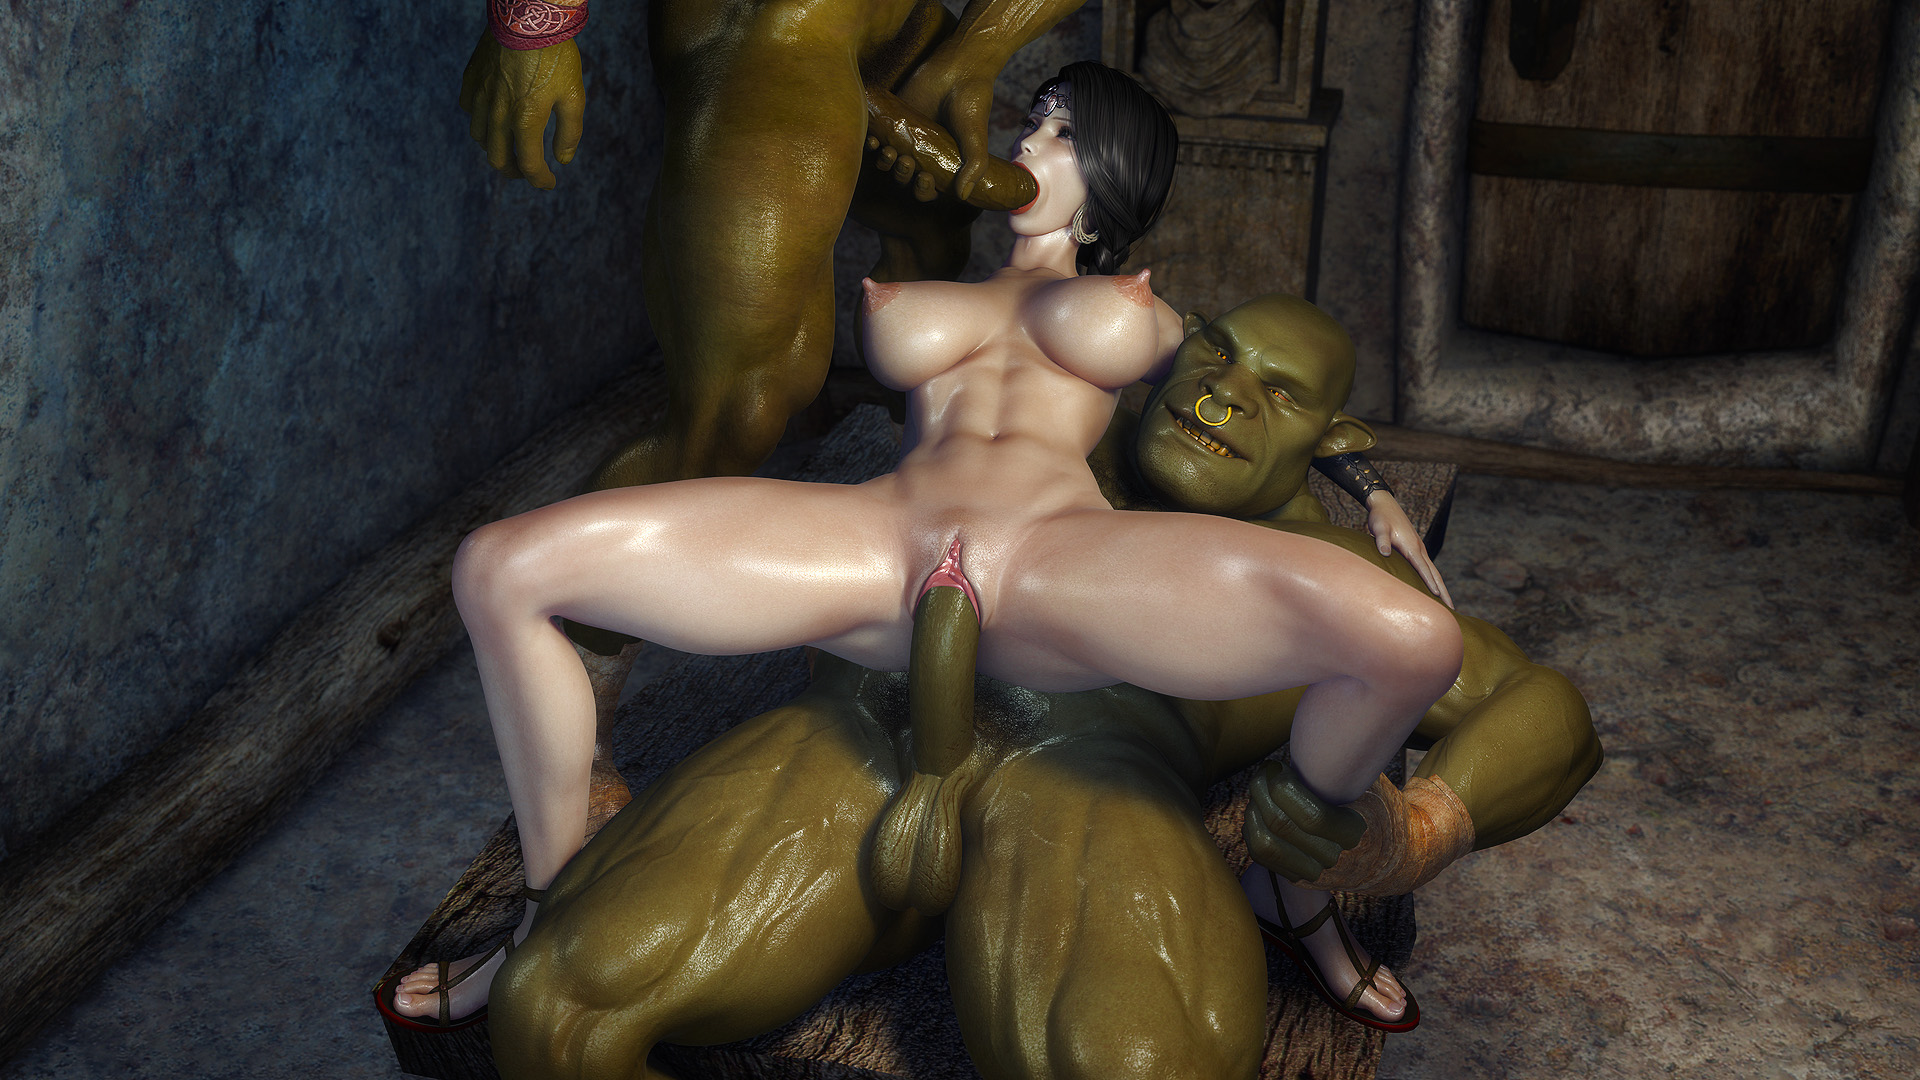 Free orc porn videos nude photos